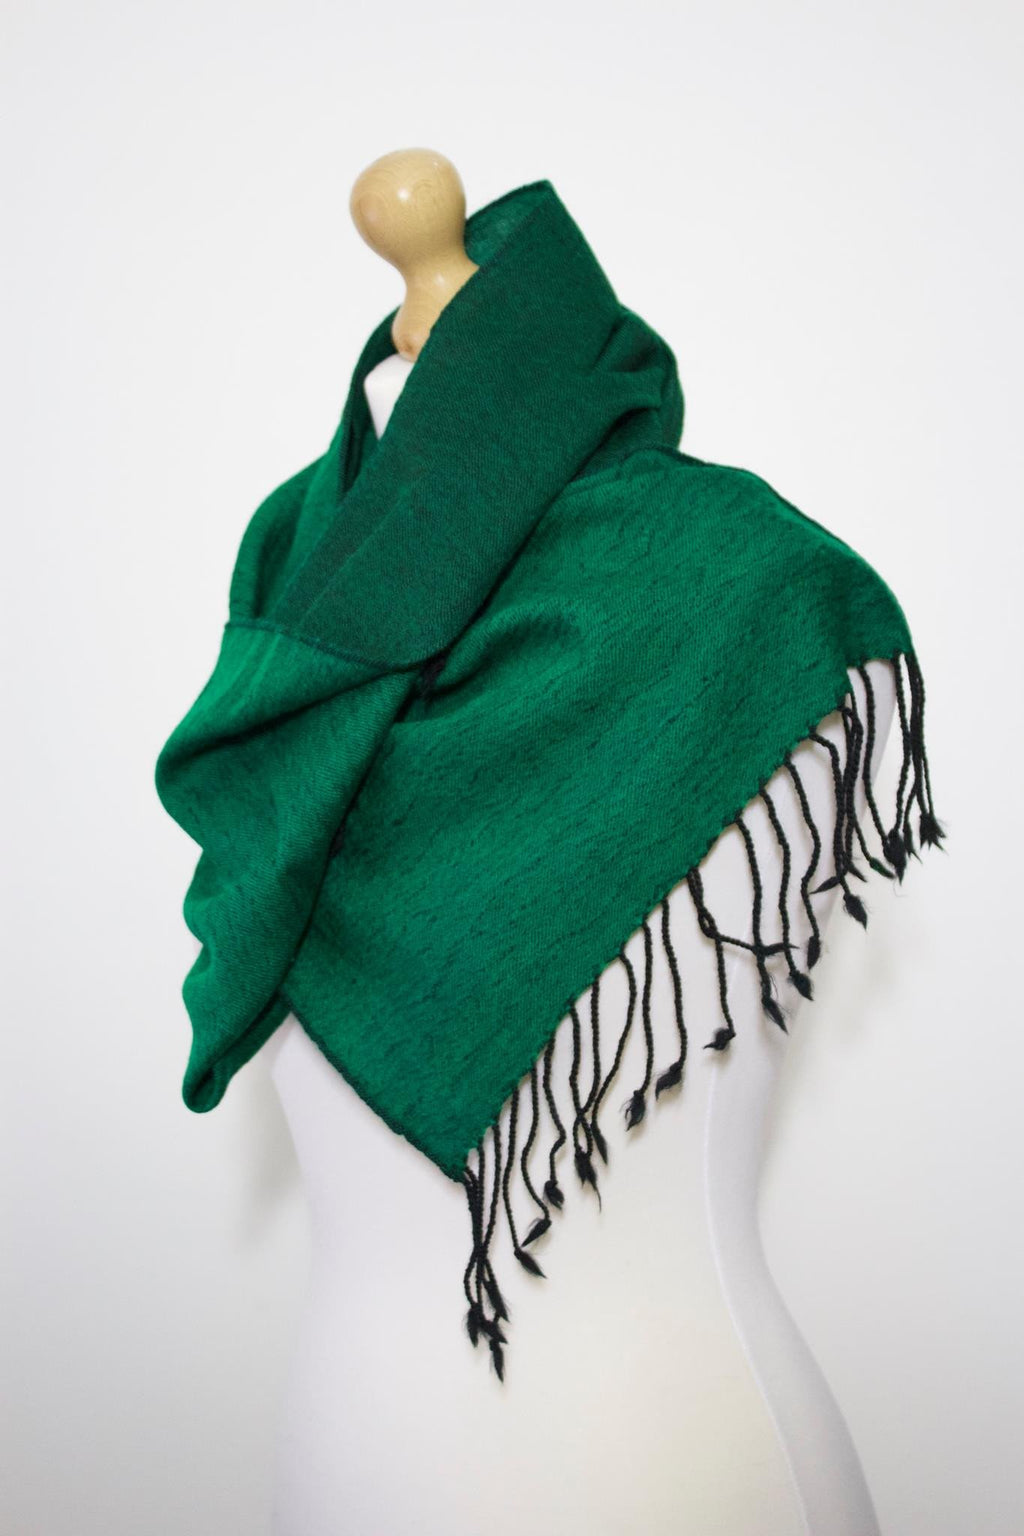 Wool Blend, Bright Forest Green Two Tone, Muffler